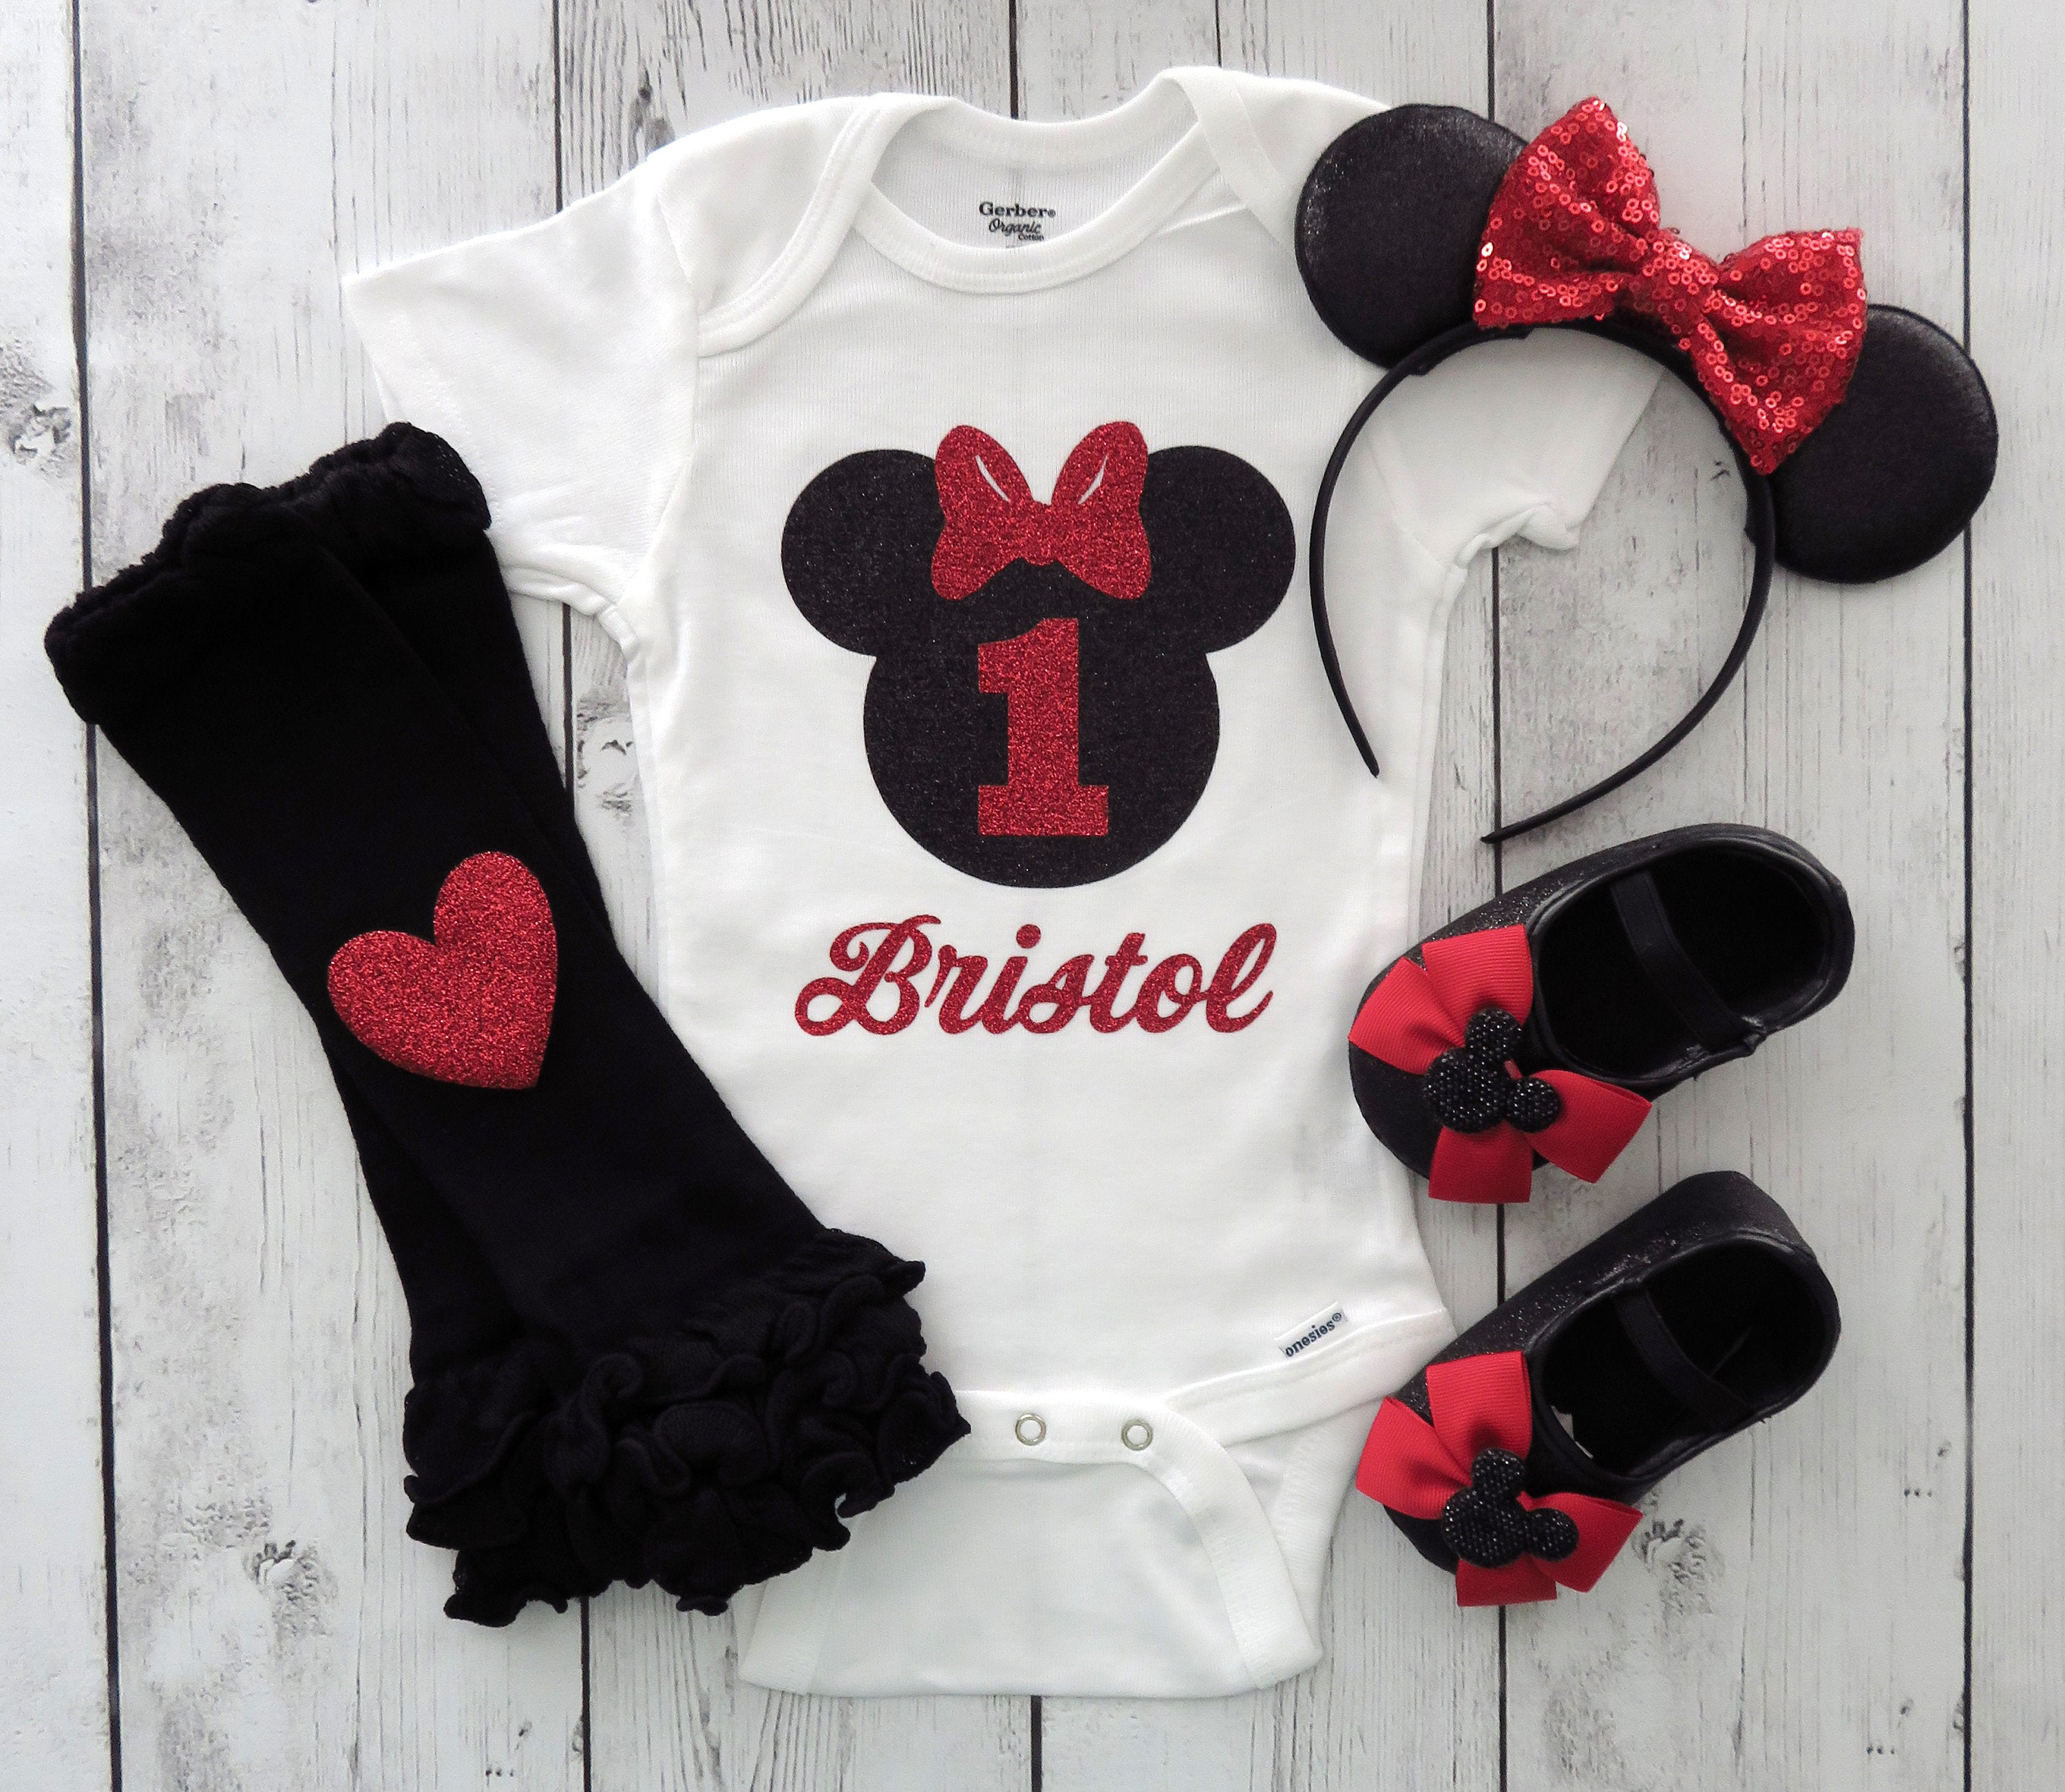 Minnie Mouse First Birthday Onesie with matching shoes and minnie ears in red - personalized outfit, minnie mouse birthday shirt, 1st bday